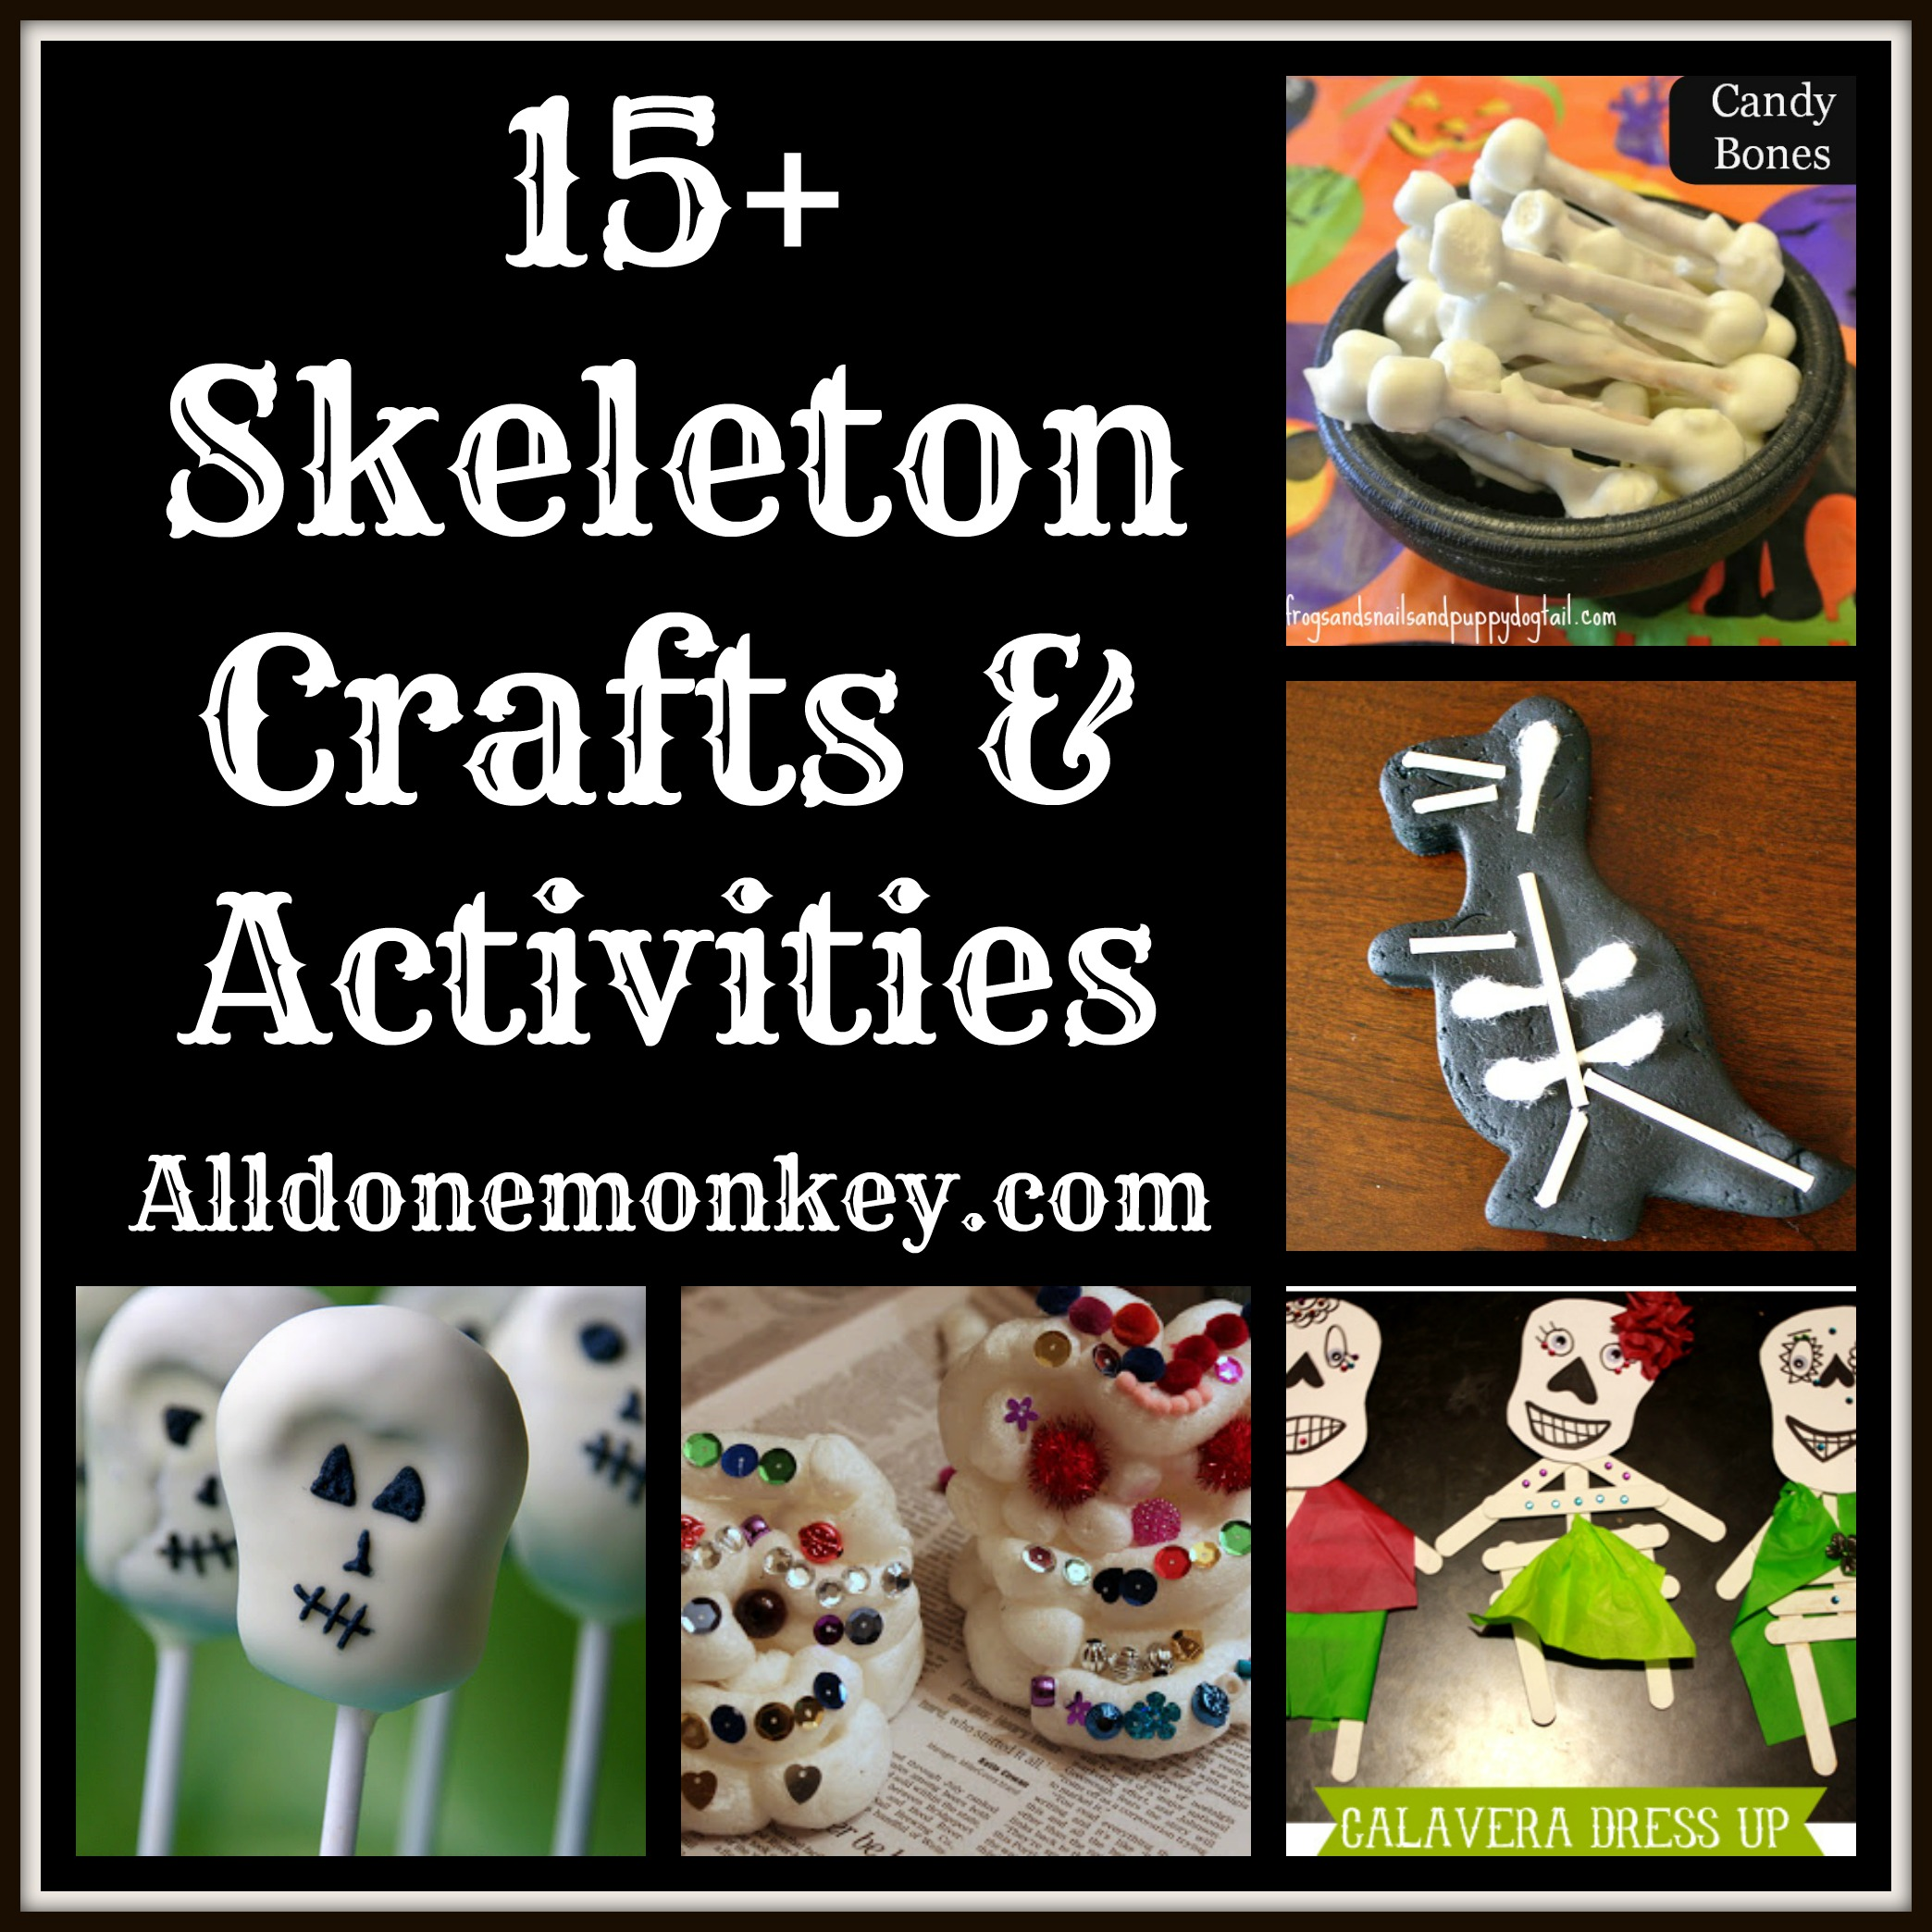 15+ Skeleton Crafts & Activities - Alldonemonkey.com - Perfect for Halloween or Day of the Dead